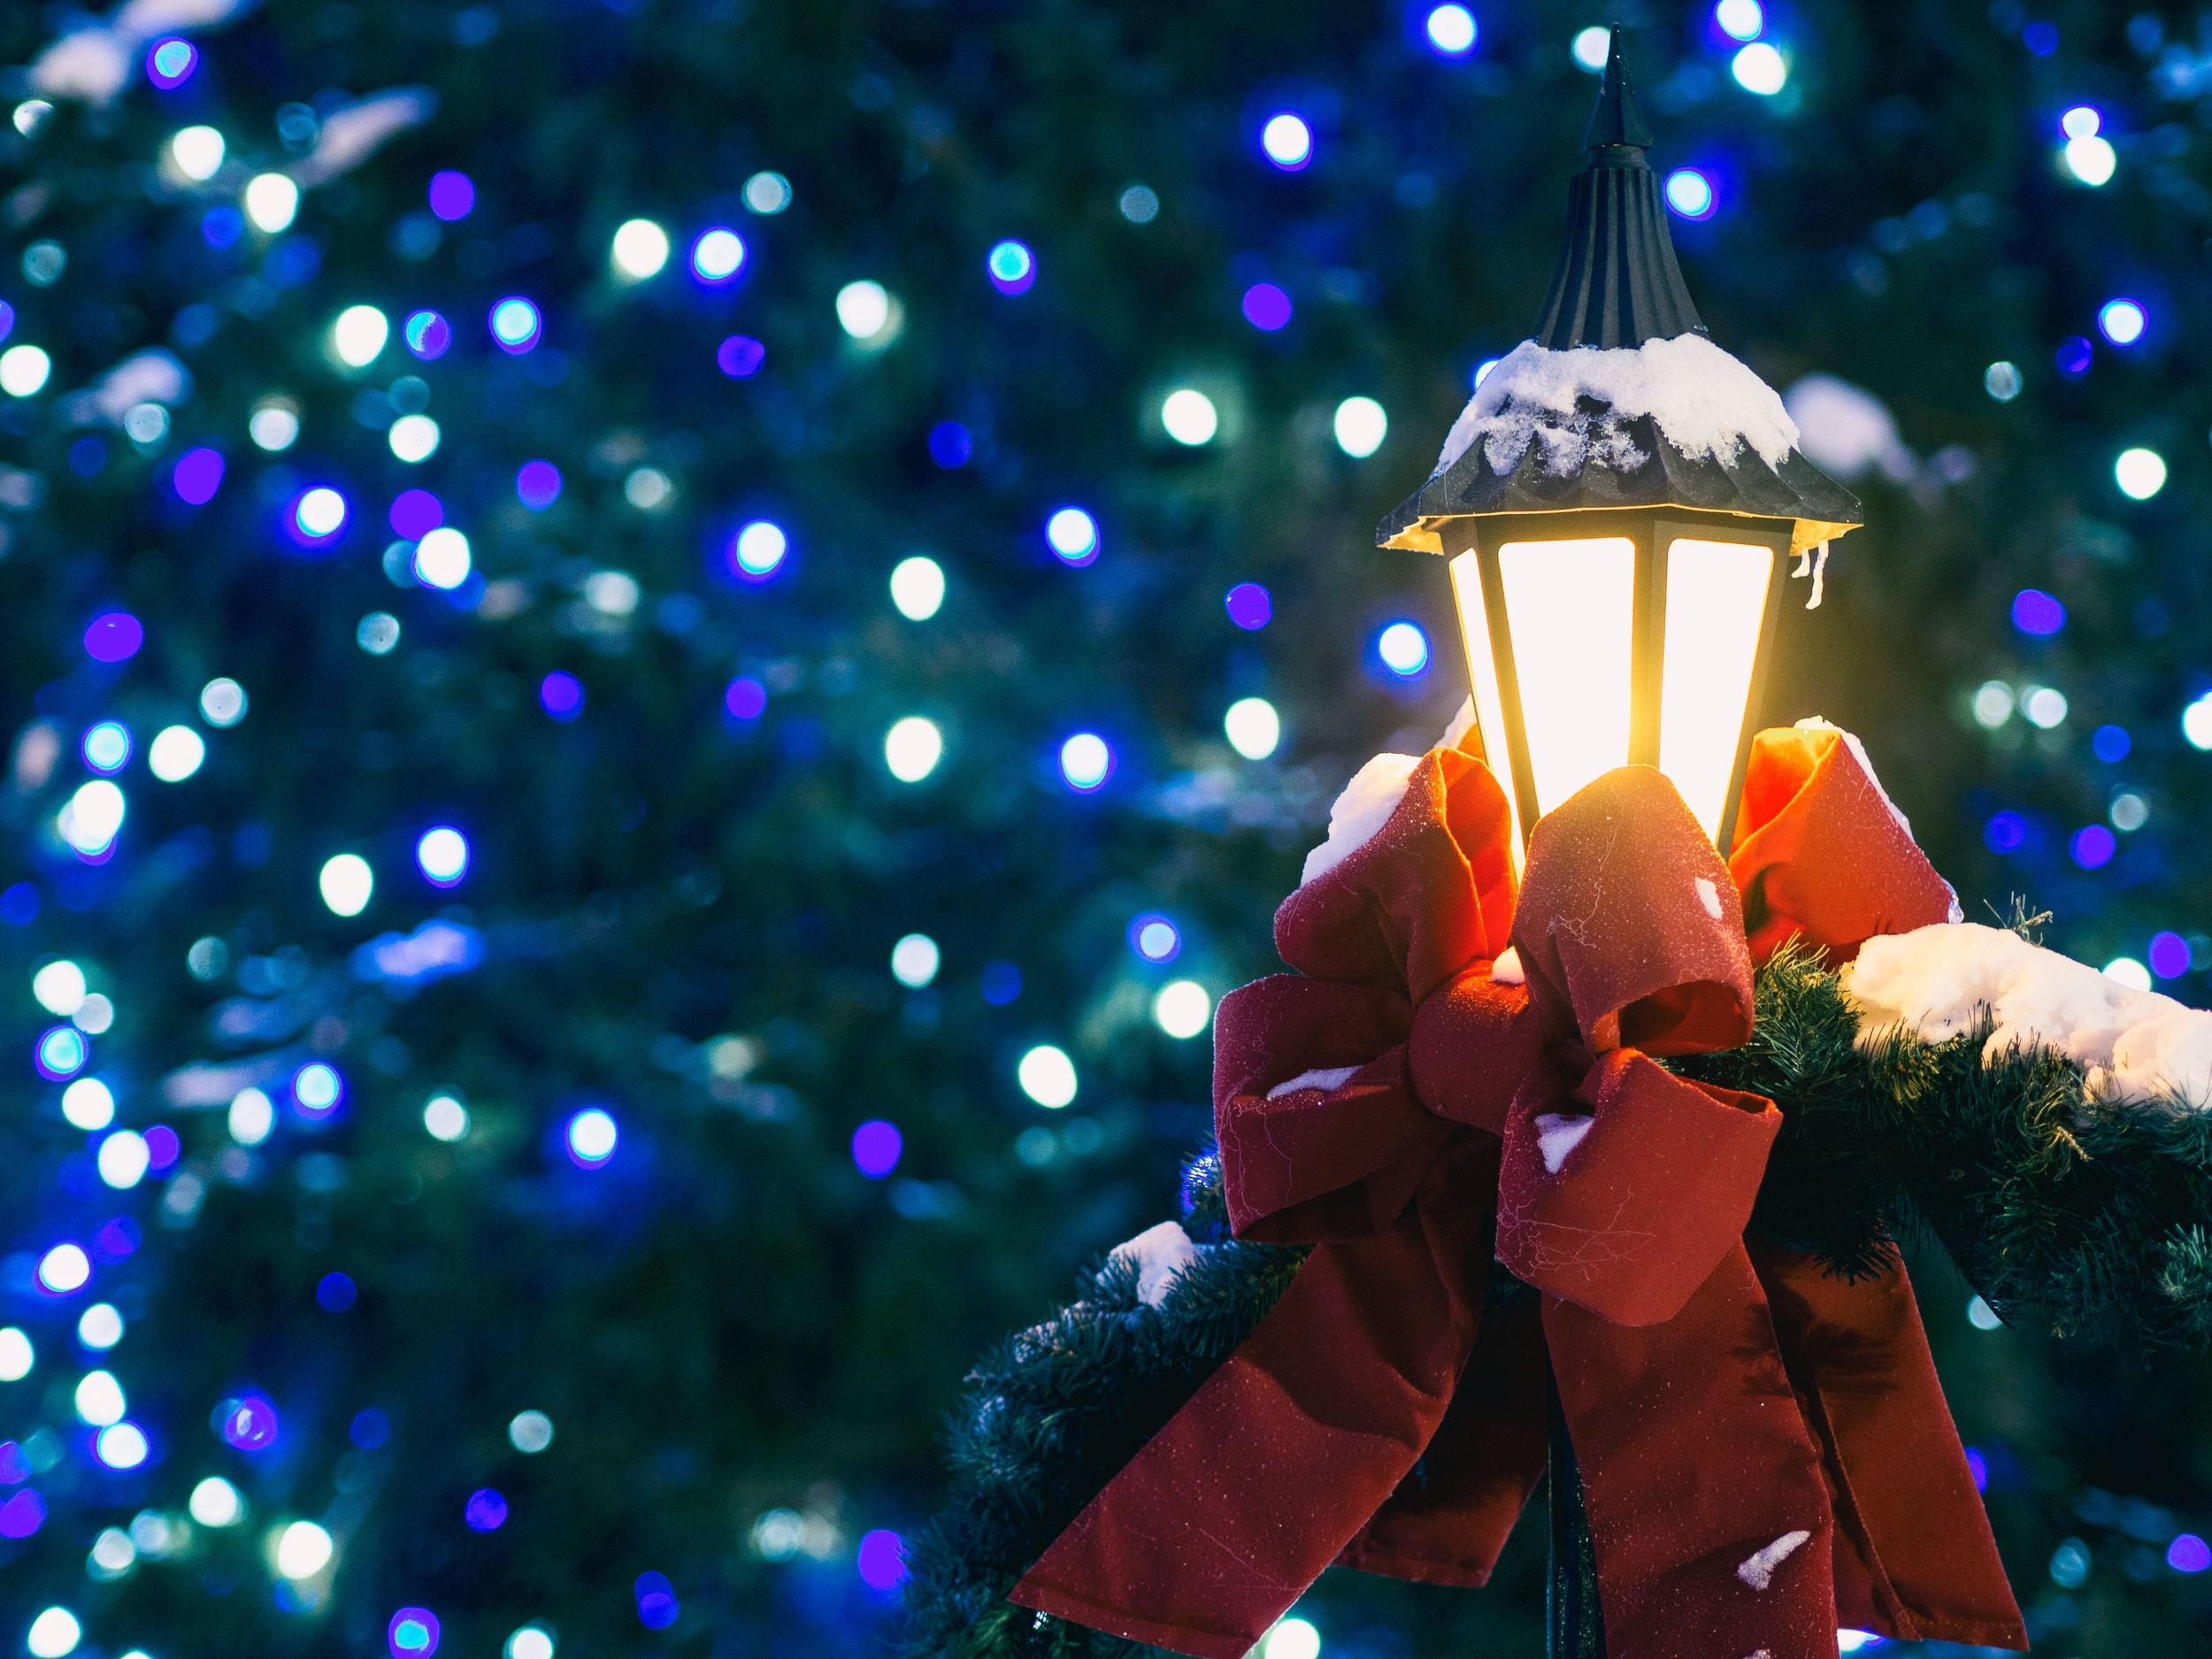 Holiday lights and street lamp